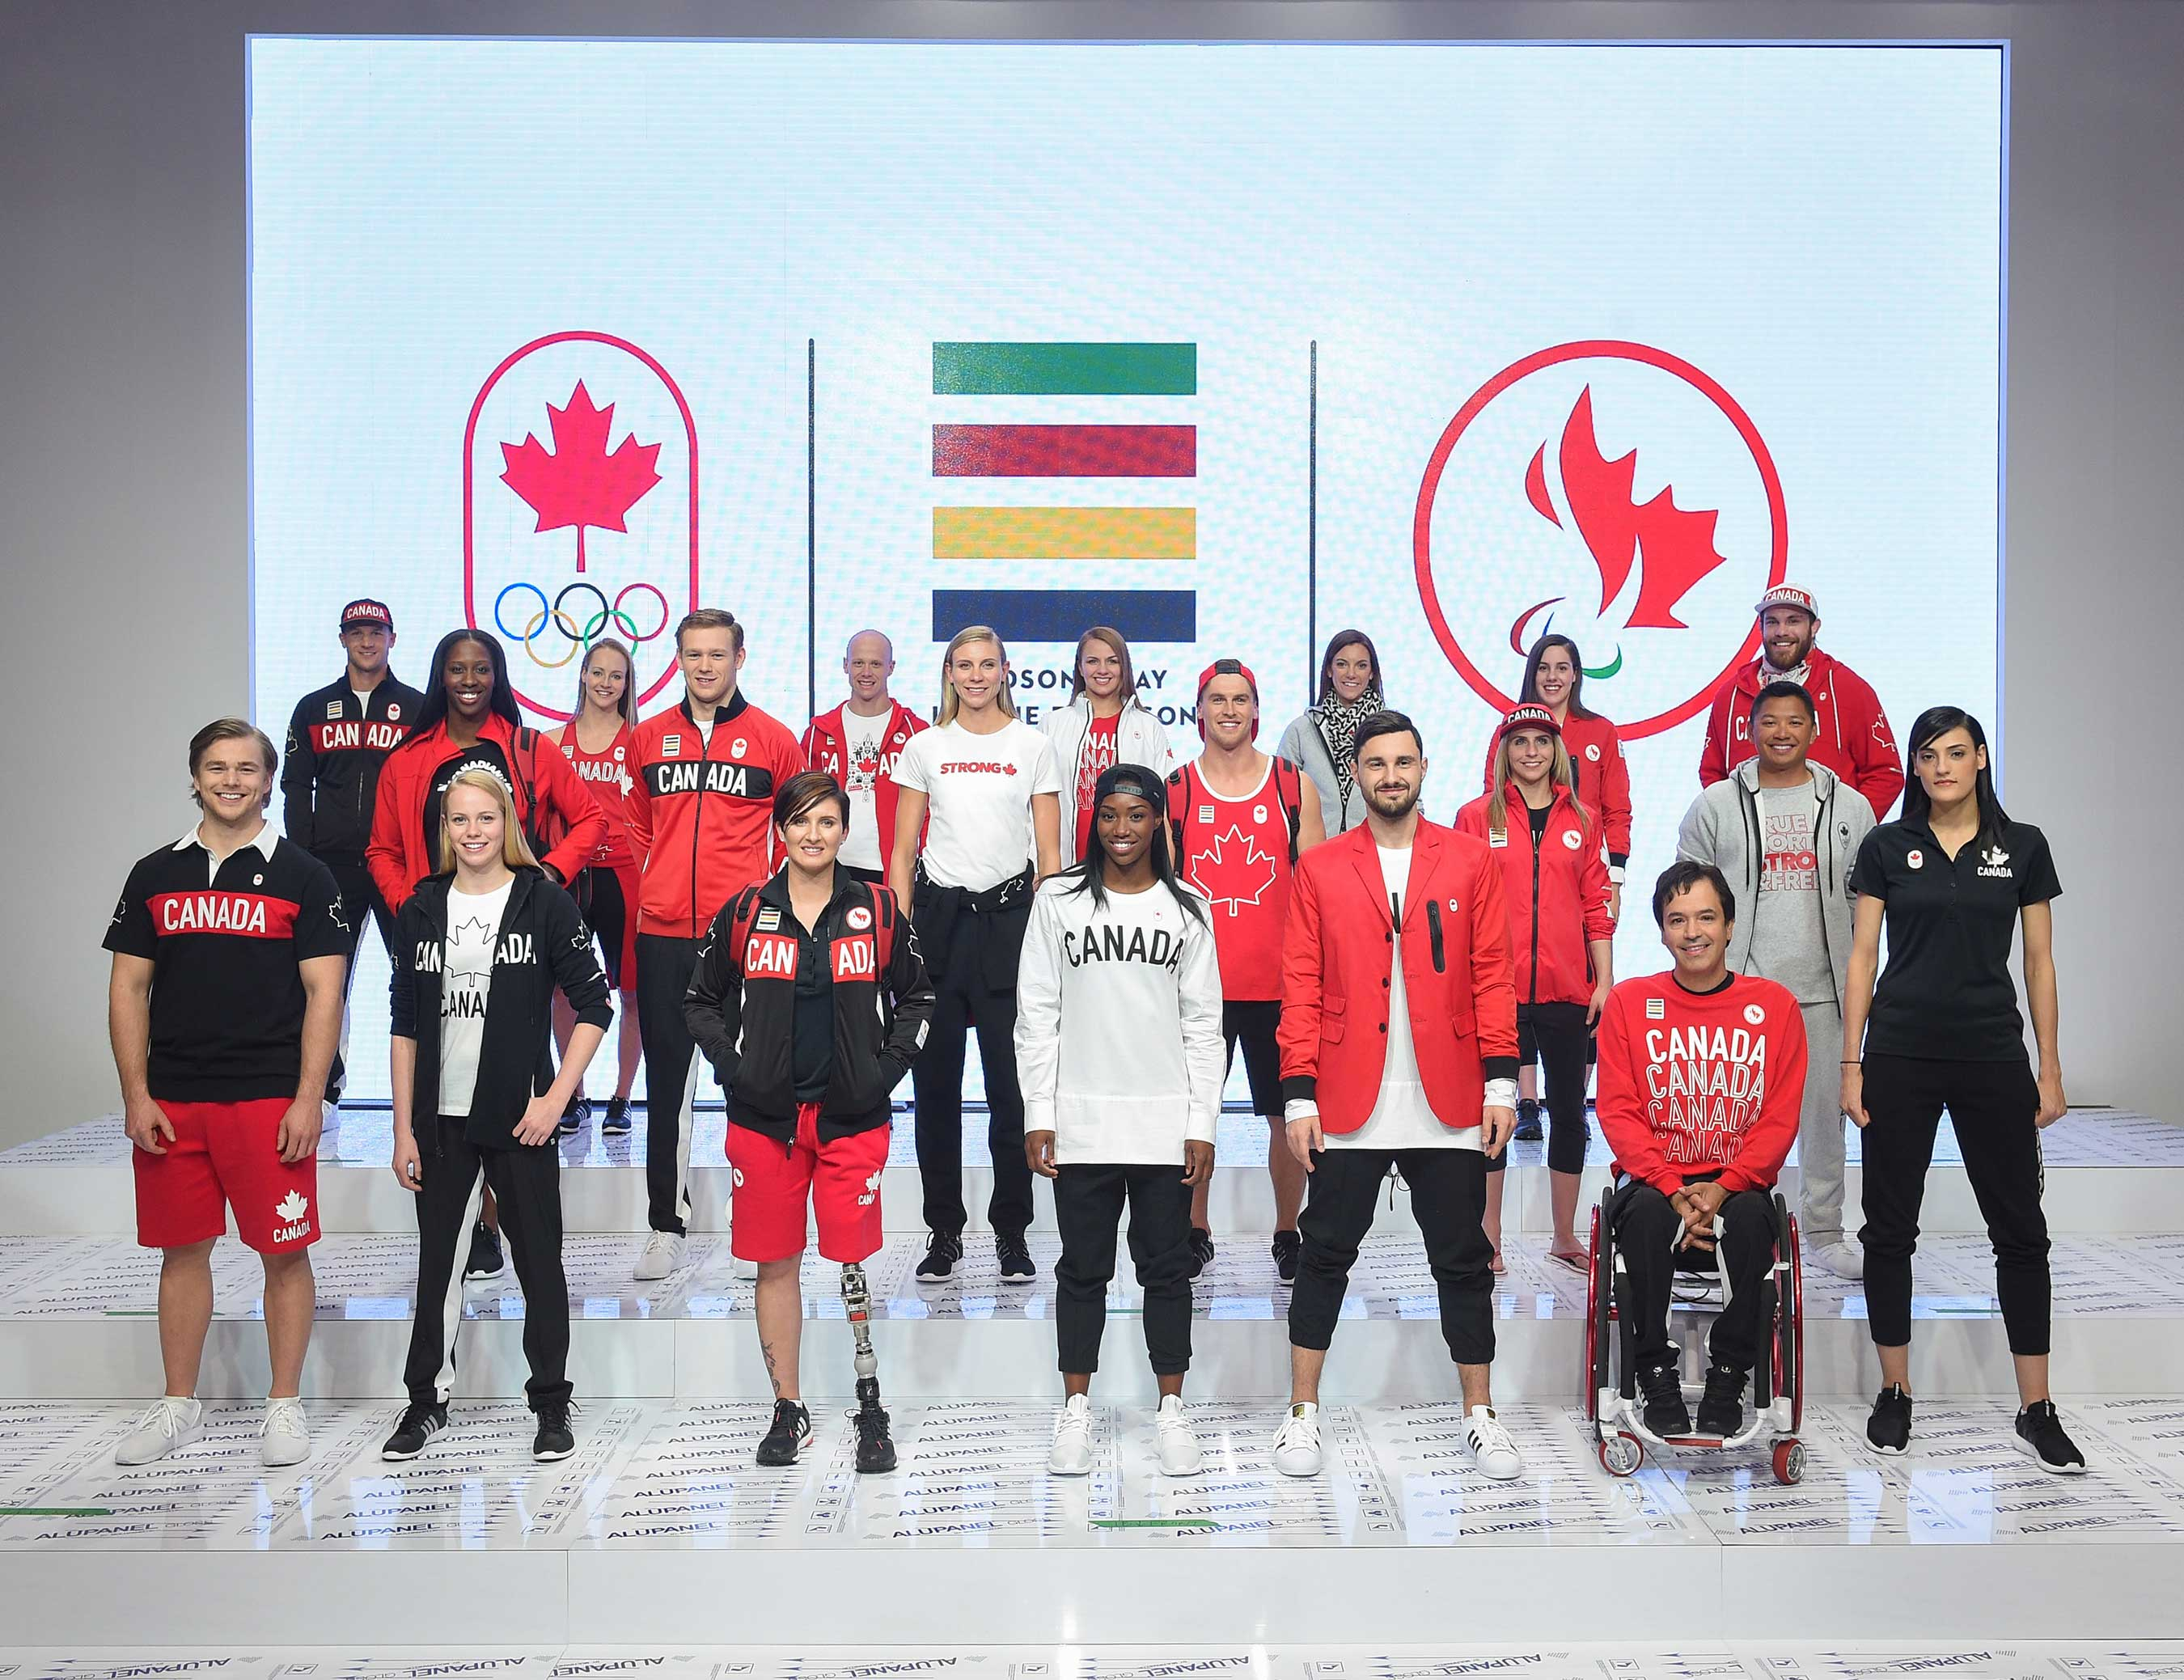 Hudson's Bay Company, the Canadian Olympic Committee, and the Canadian Paralympic Committee launch the Team Canada Collection for Rio 2016 on April 12, 2016. HUDSON'S BAY.